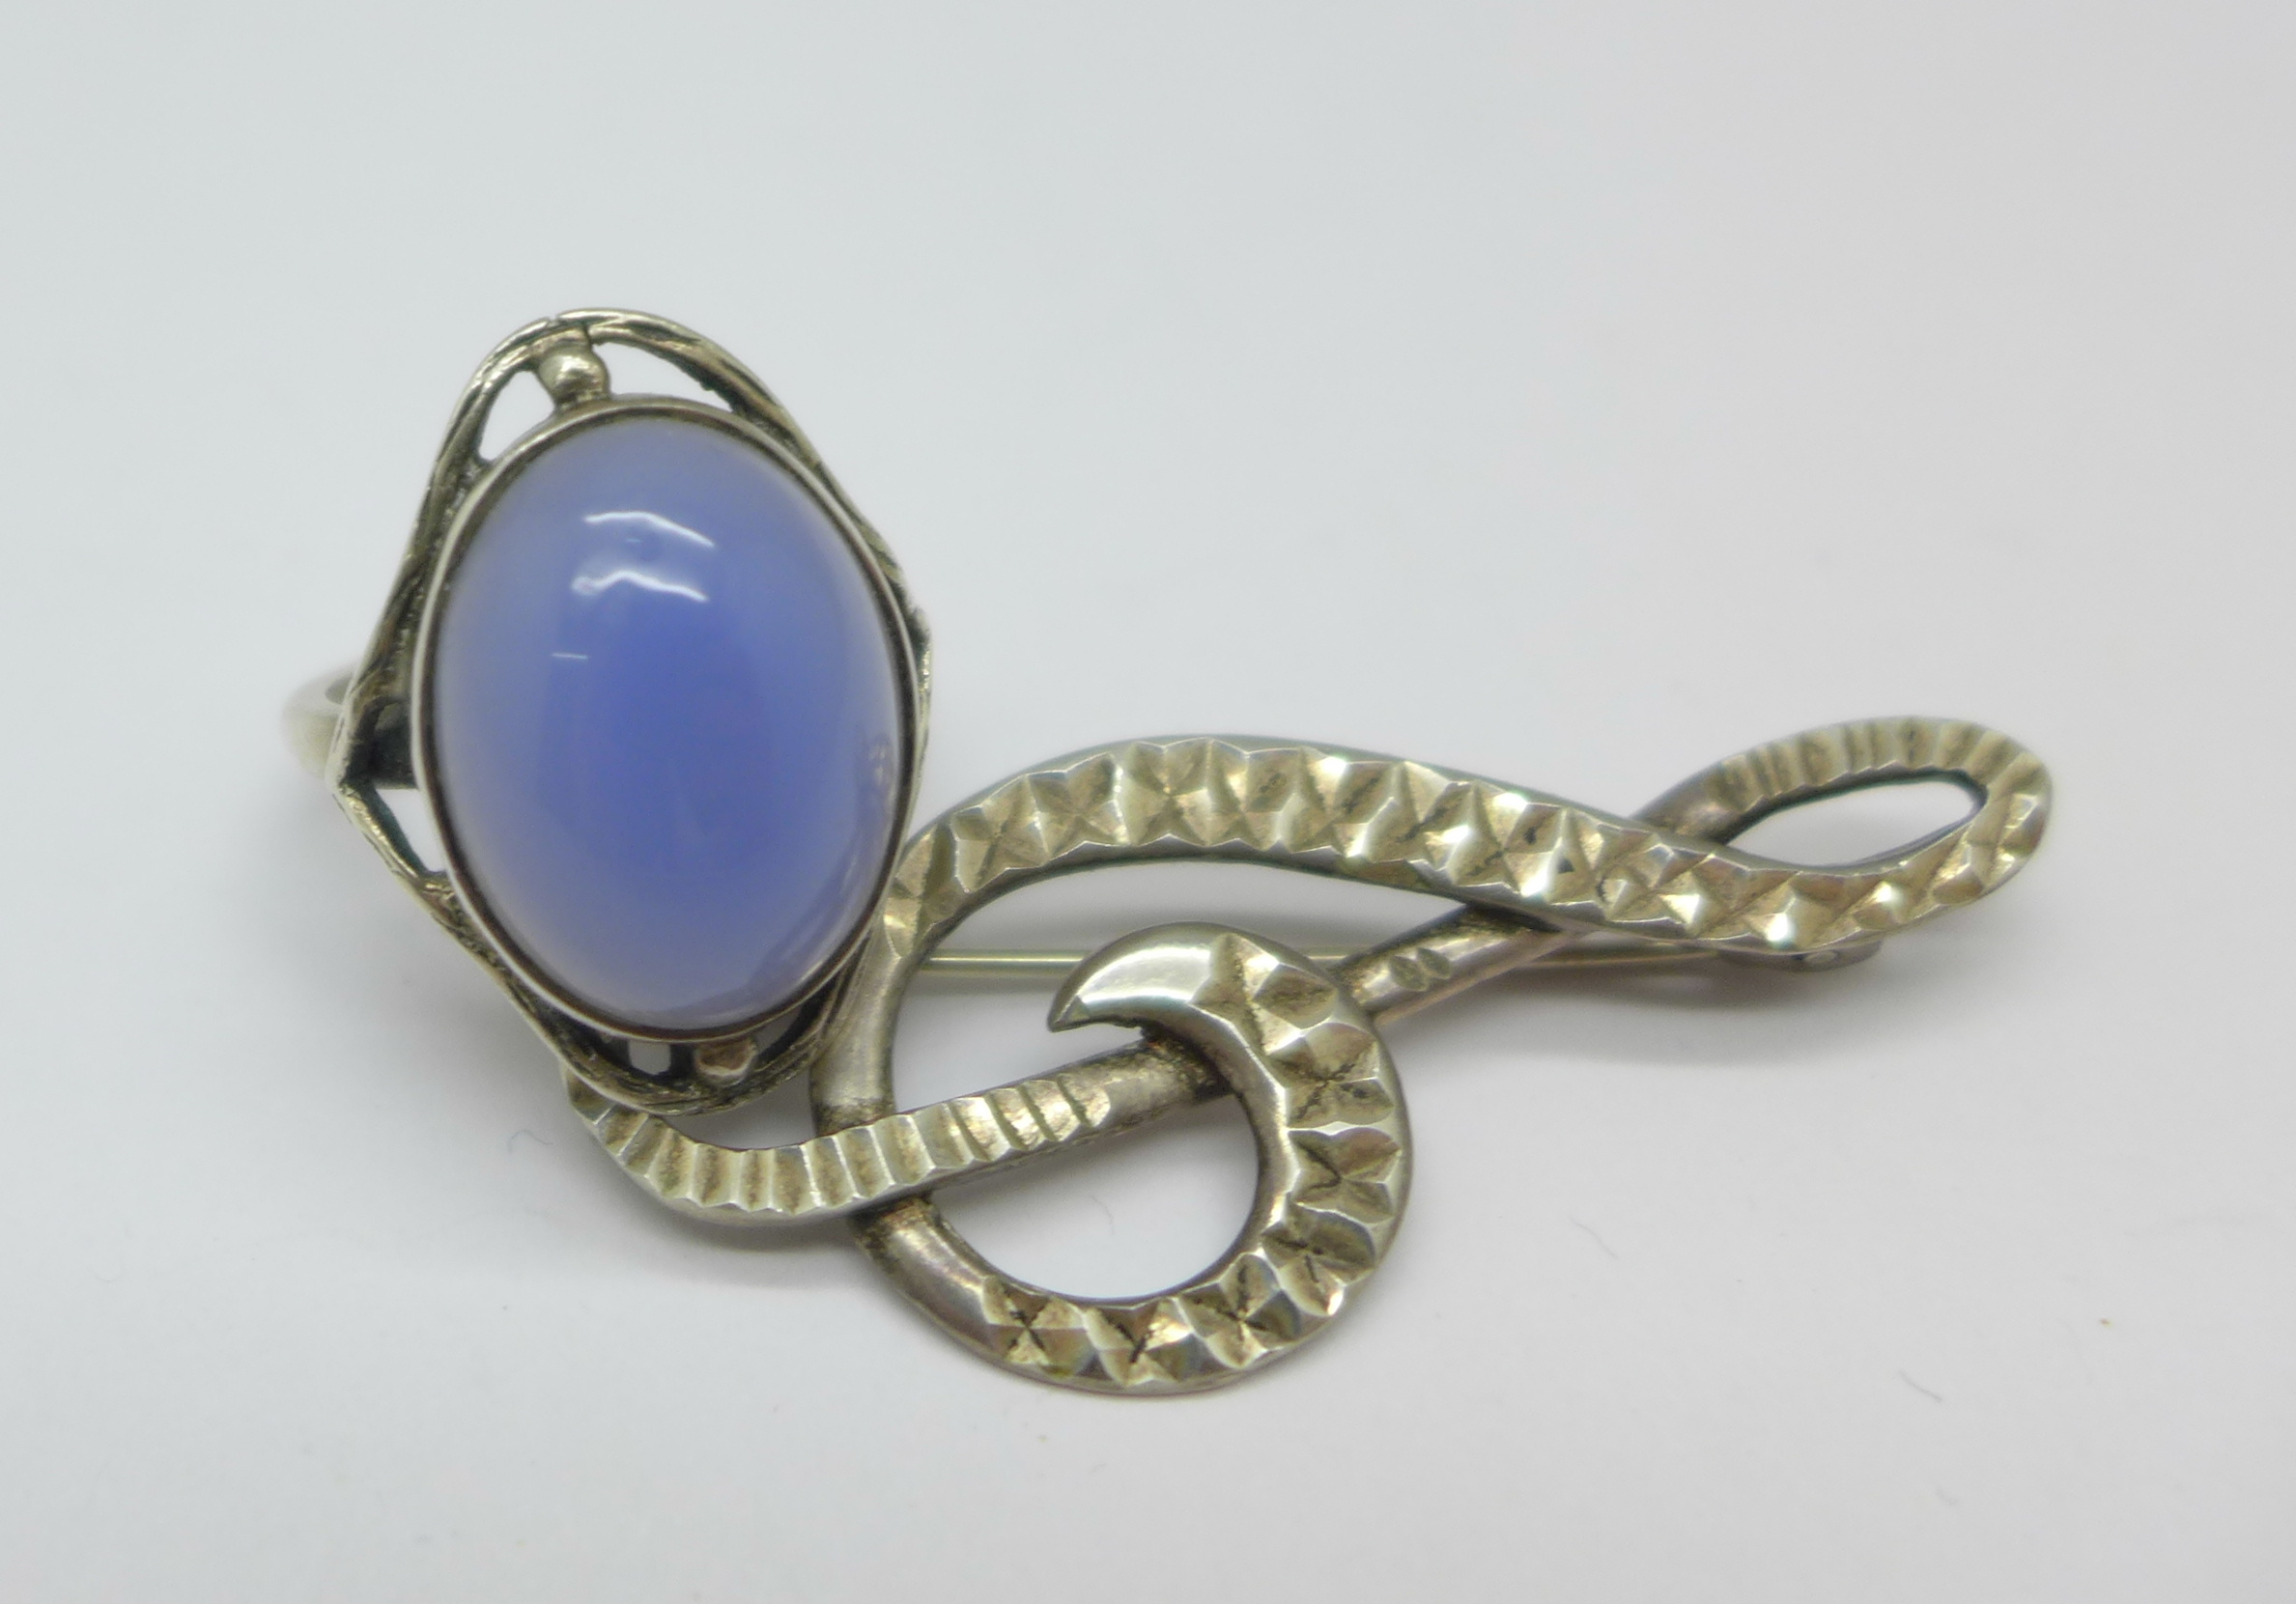 An Arts & Crafts silver ring set with chalcedony, L, and a treble clef brooch marked silver - Image 2 of 3